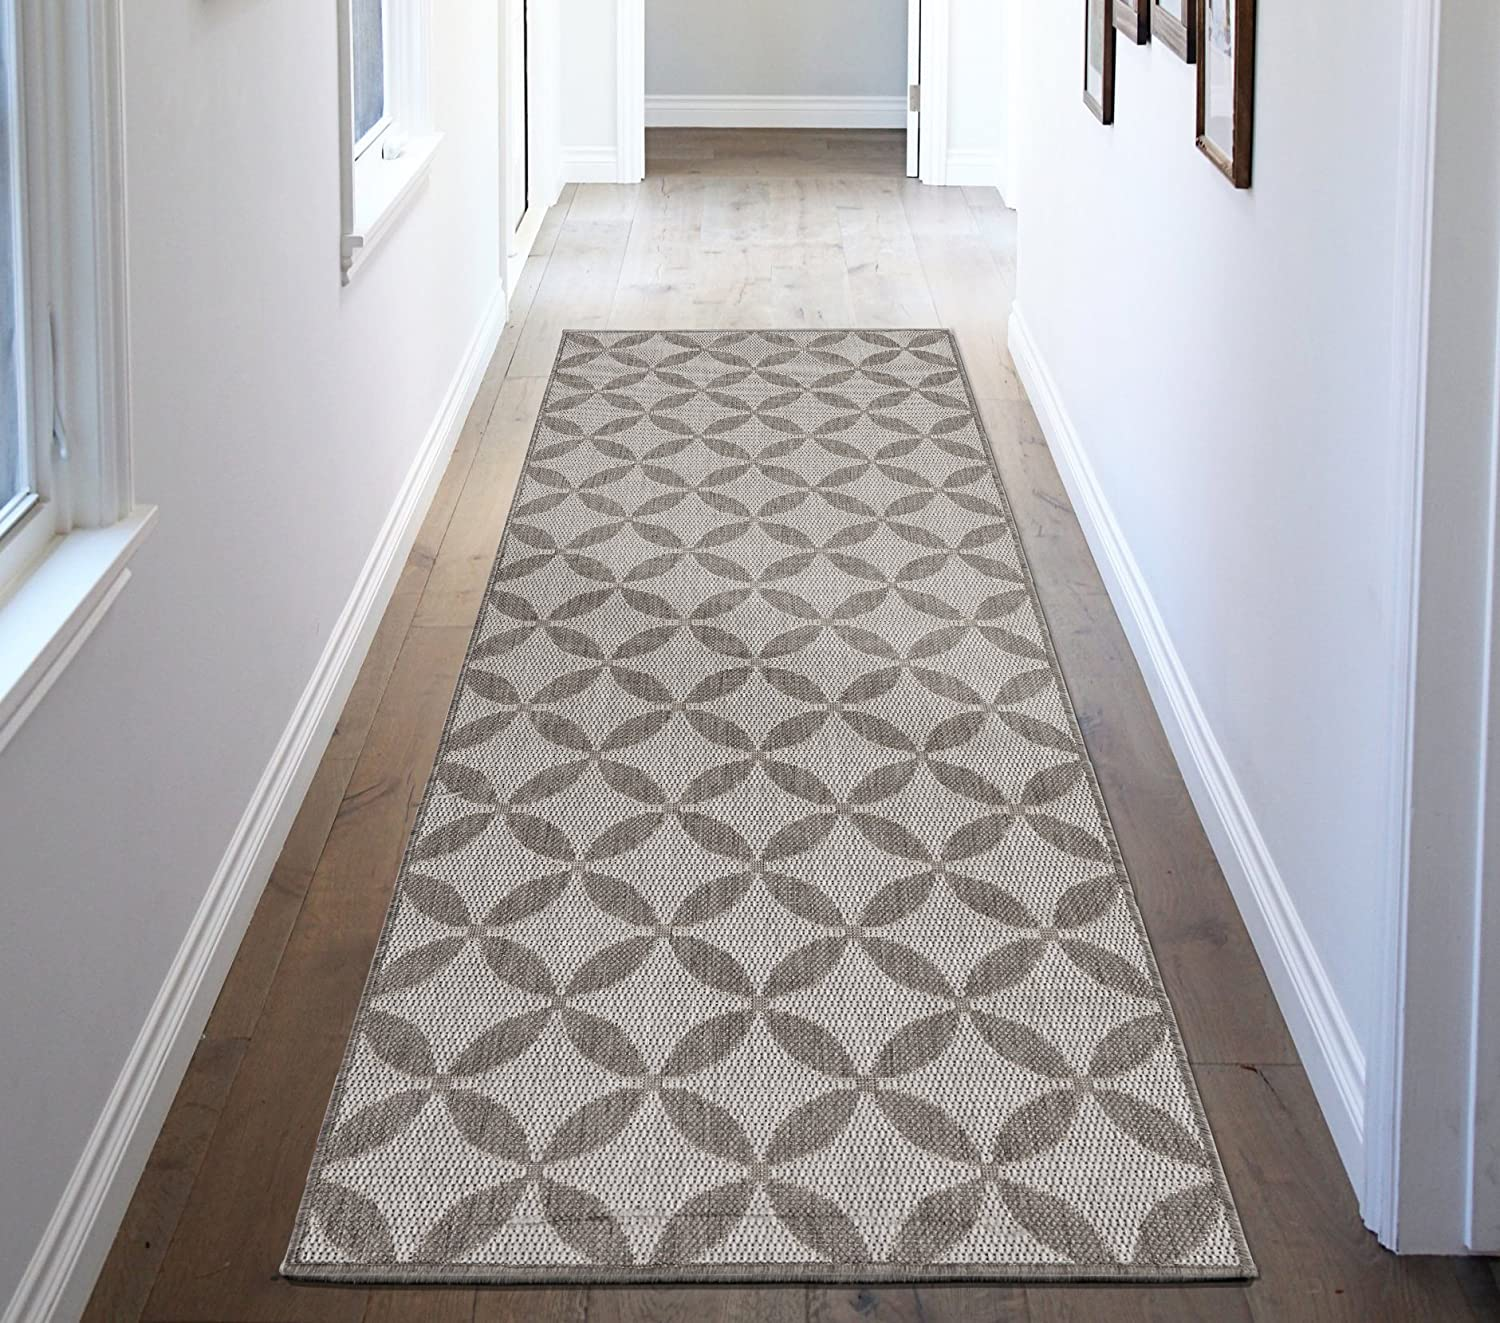 Ottomanson Jardin Collection Contemporary Star Design Indoor/Outdoor Jute Backing Lattice Runner Rug, 2'7 x 7'0, Grey JRD8823-3X7